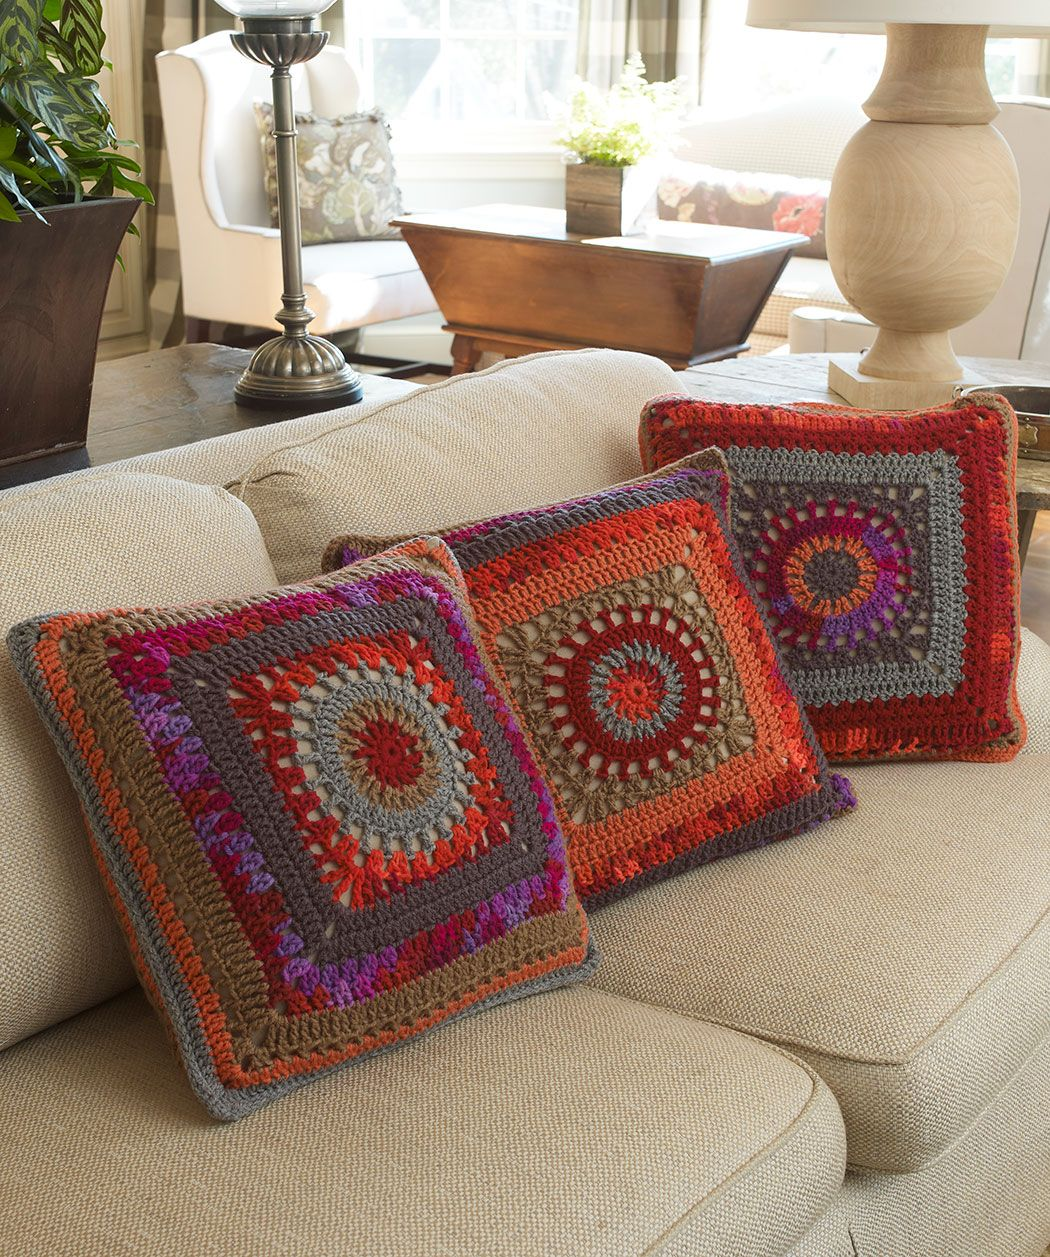 crochet pattern - circle in the square pillows | crafts | Pinterest ...